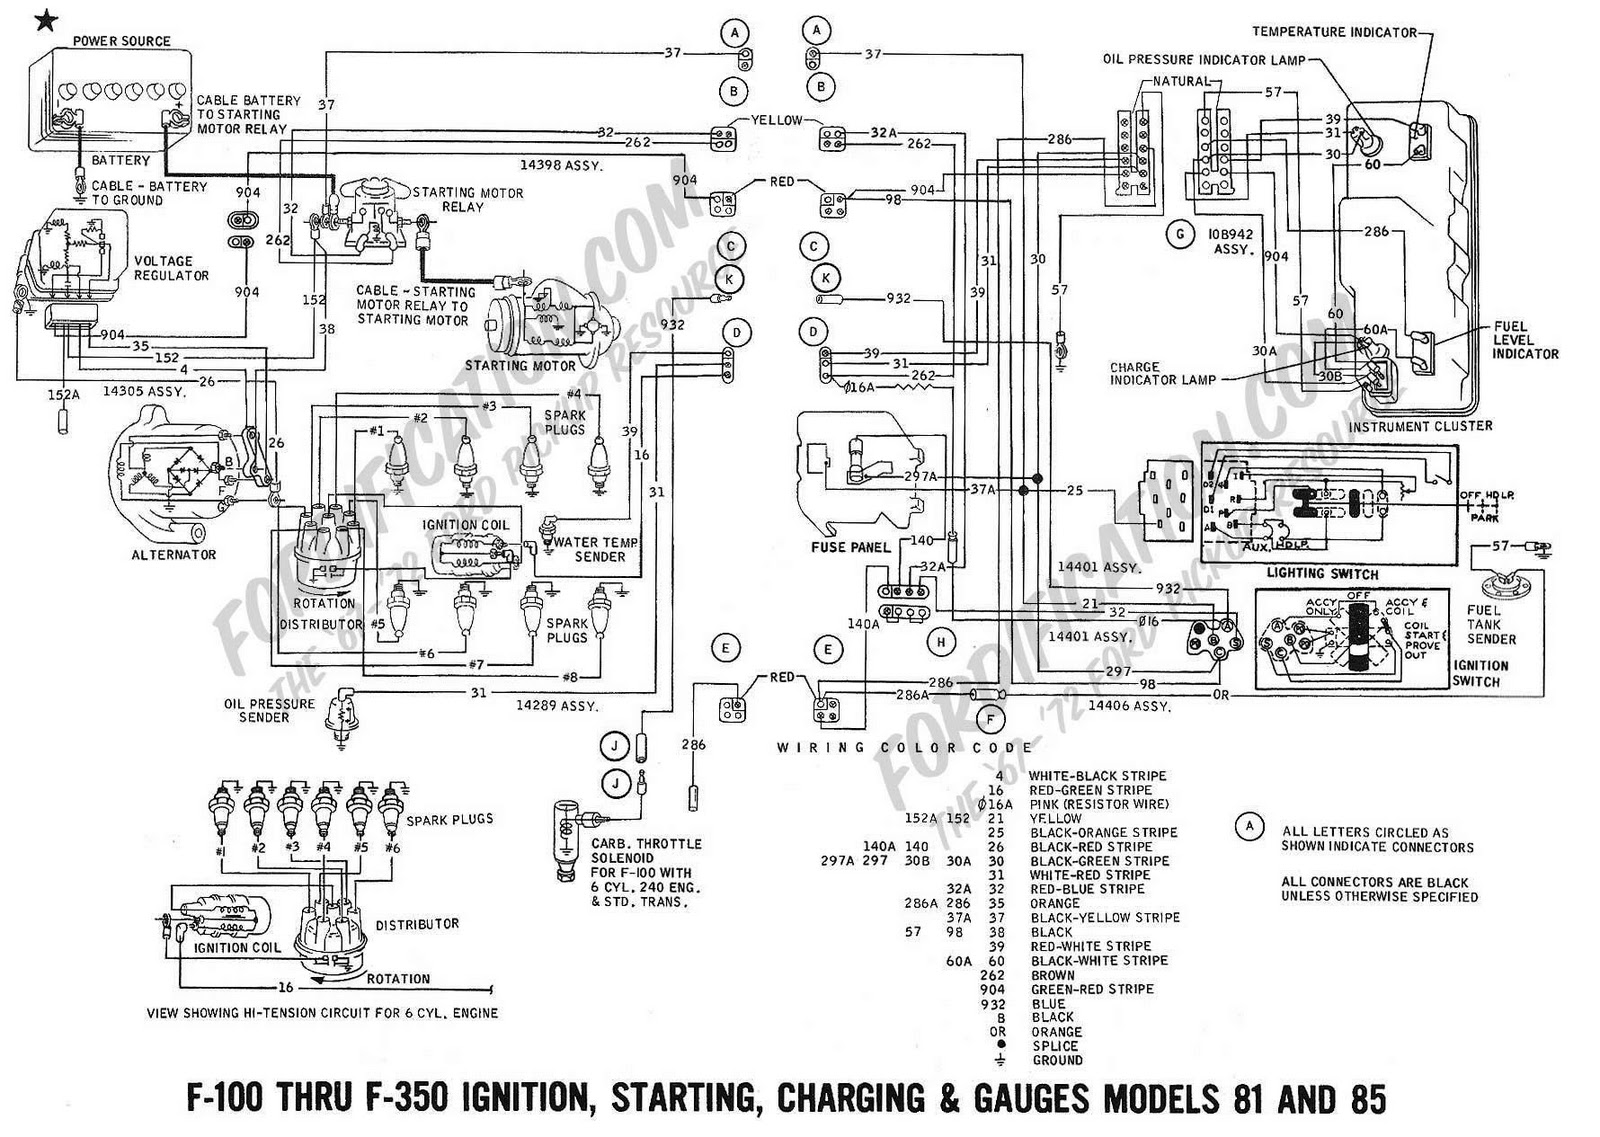 1993 Dodge Dakota Fuel System Wiring Diagram Data Diagrams 1994 V6 Engine Schematic Gas Tank Compartment To 1969 Ford F100 F350 Ignition Starting Charging And W350 1992 Ram 52l